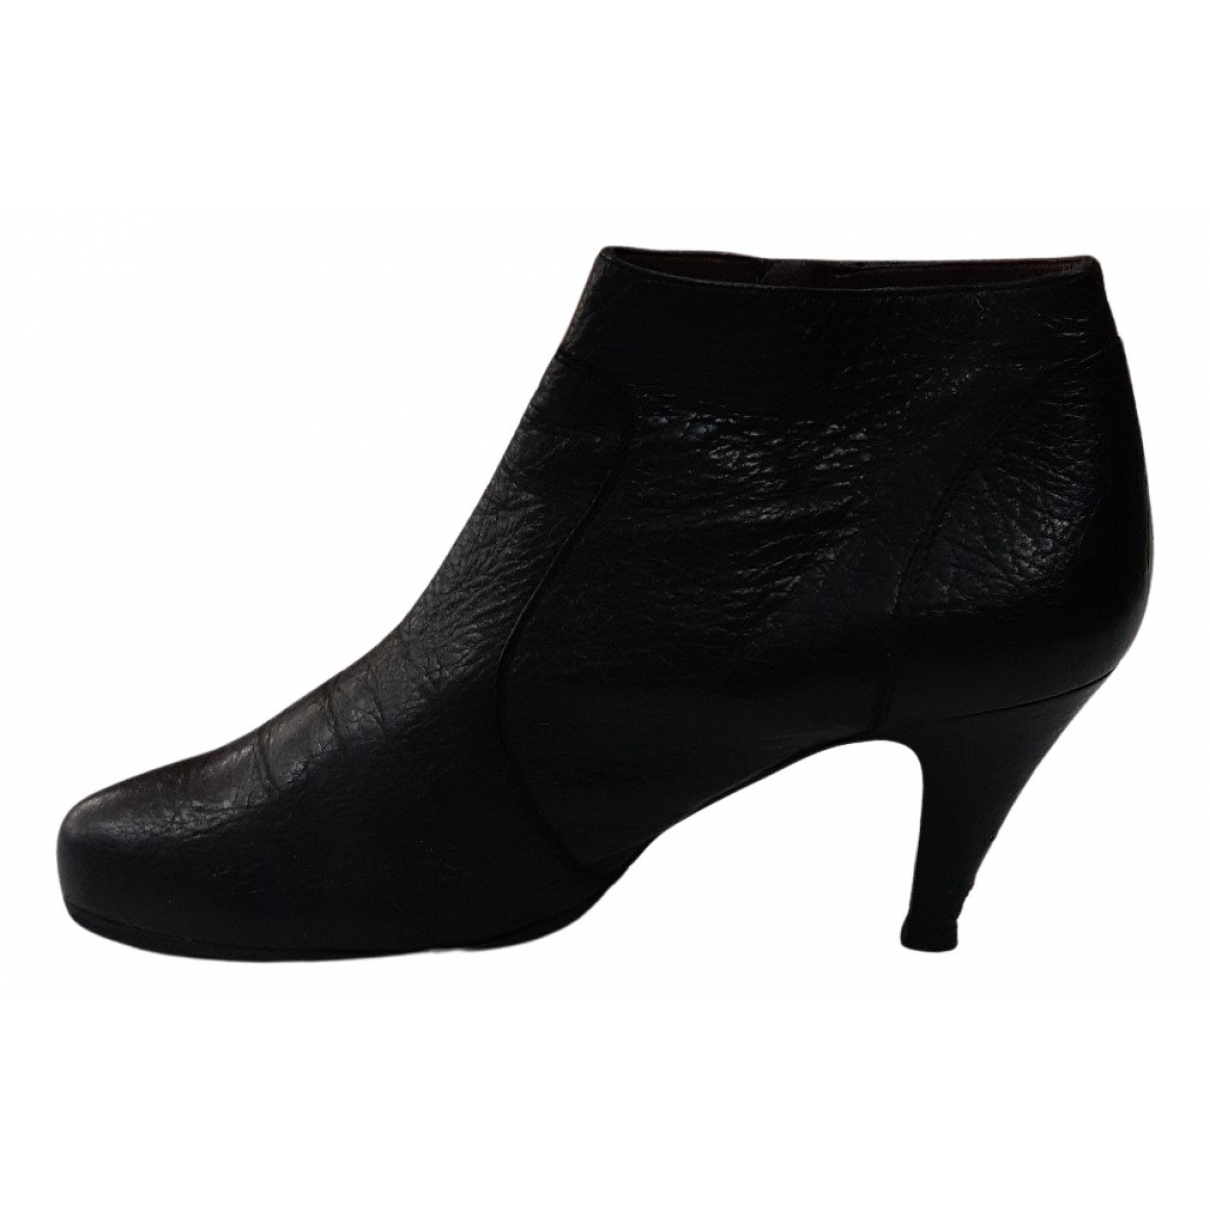 Max Mara N Black Leather Ankle boots for Women 40 EU